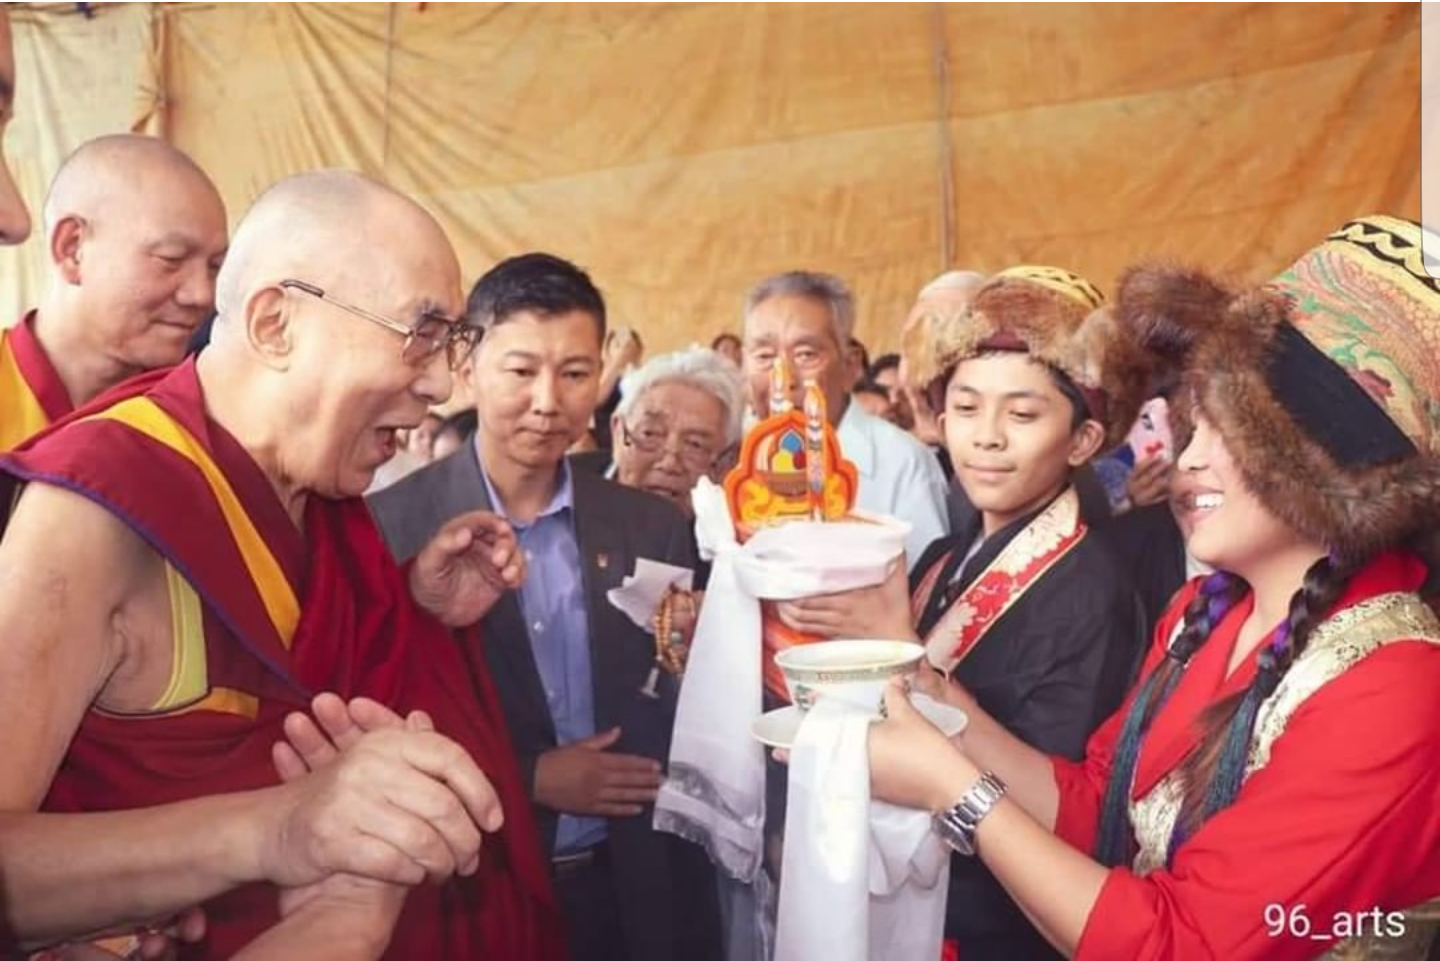 His Holiness the Dalai Lama to begin teachings in Manali - Central